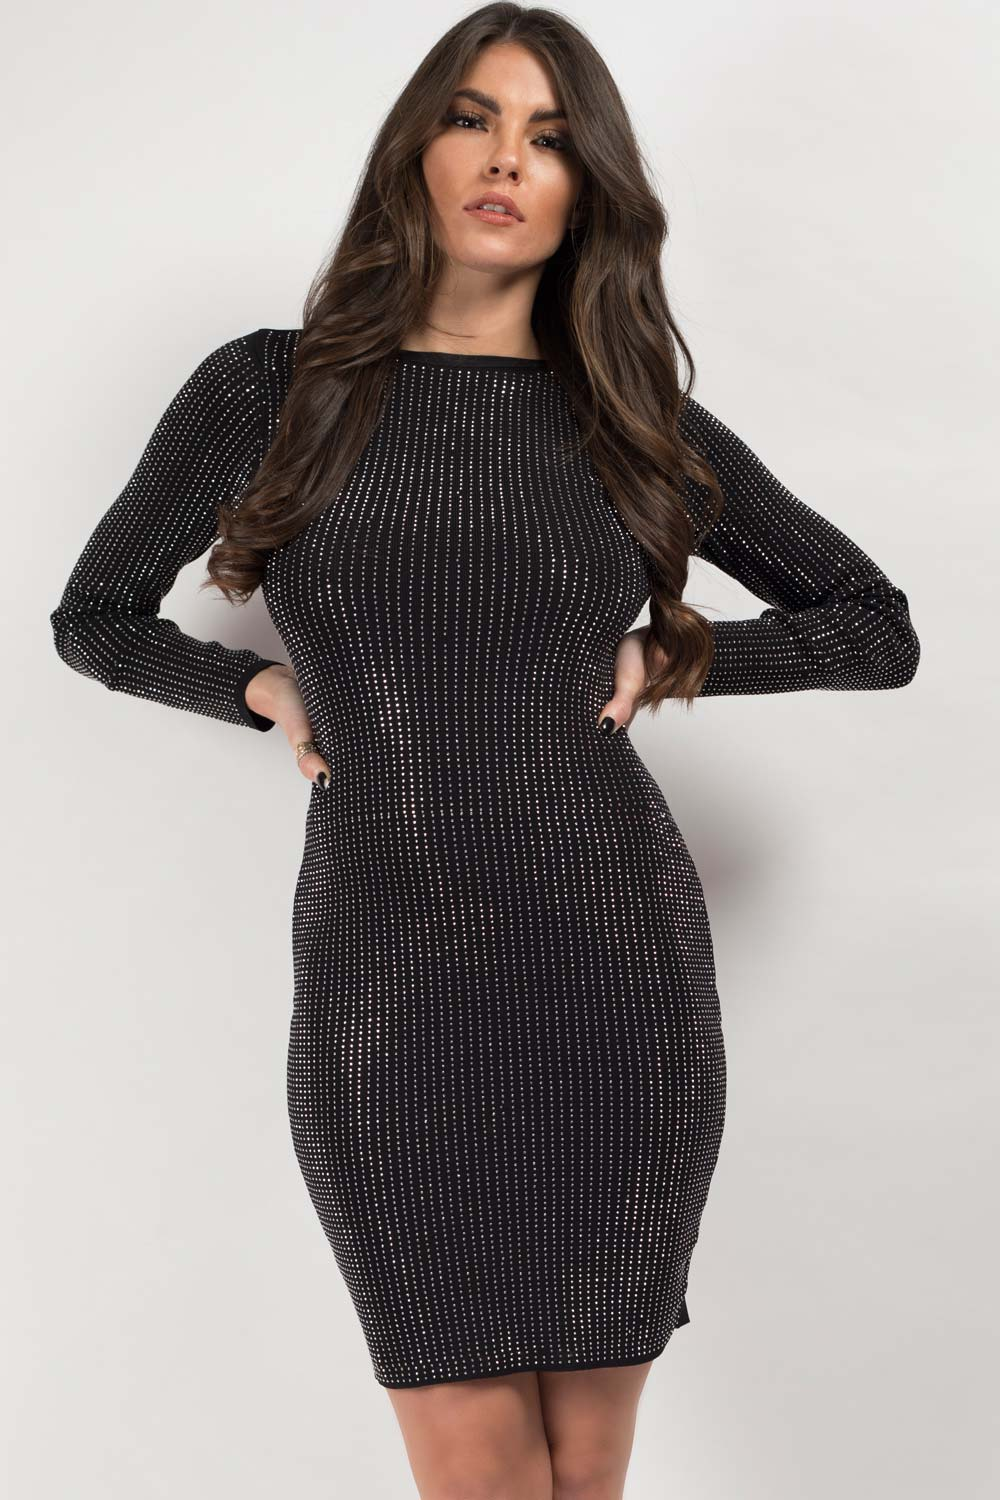 black sequin dress on sale uk